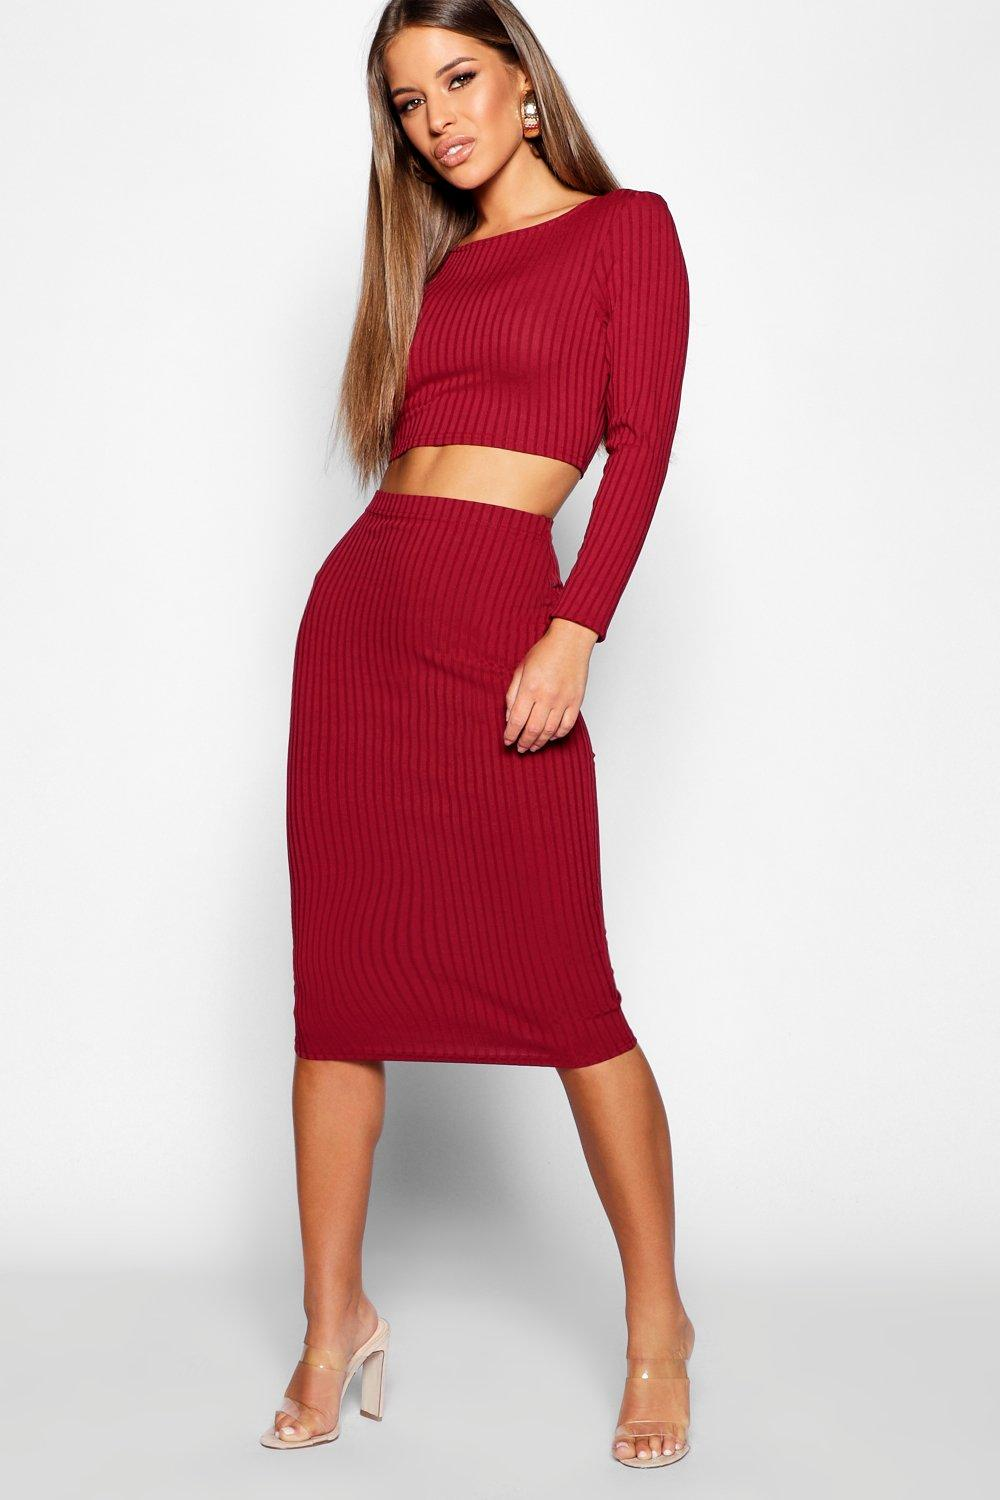 boohoo Womens Petite Rib Long Sleeve Midi Skirt Co-Ord - Red - 6, Red